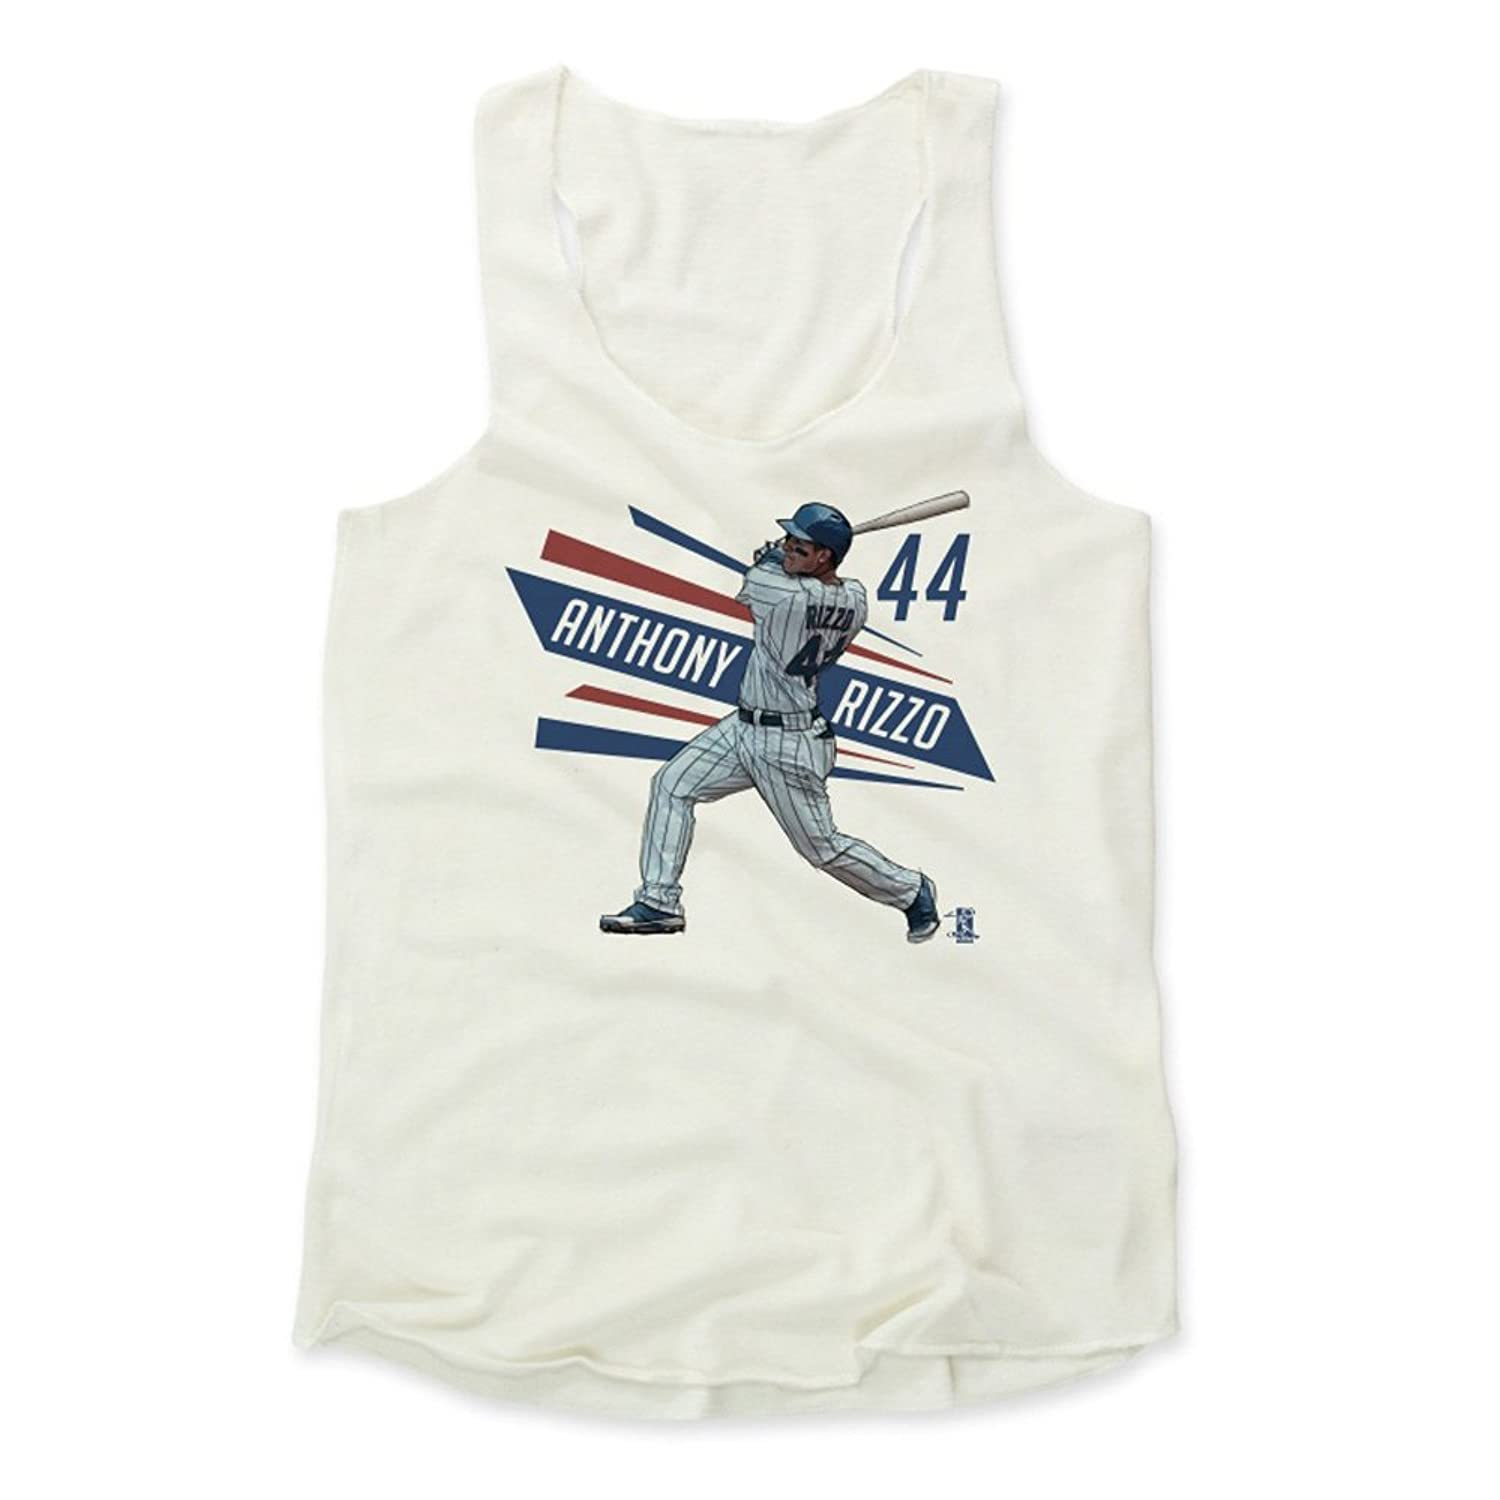 Anthony Rizzo Trace B Chicago Women's Tank Top